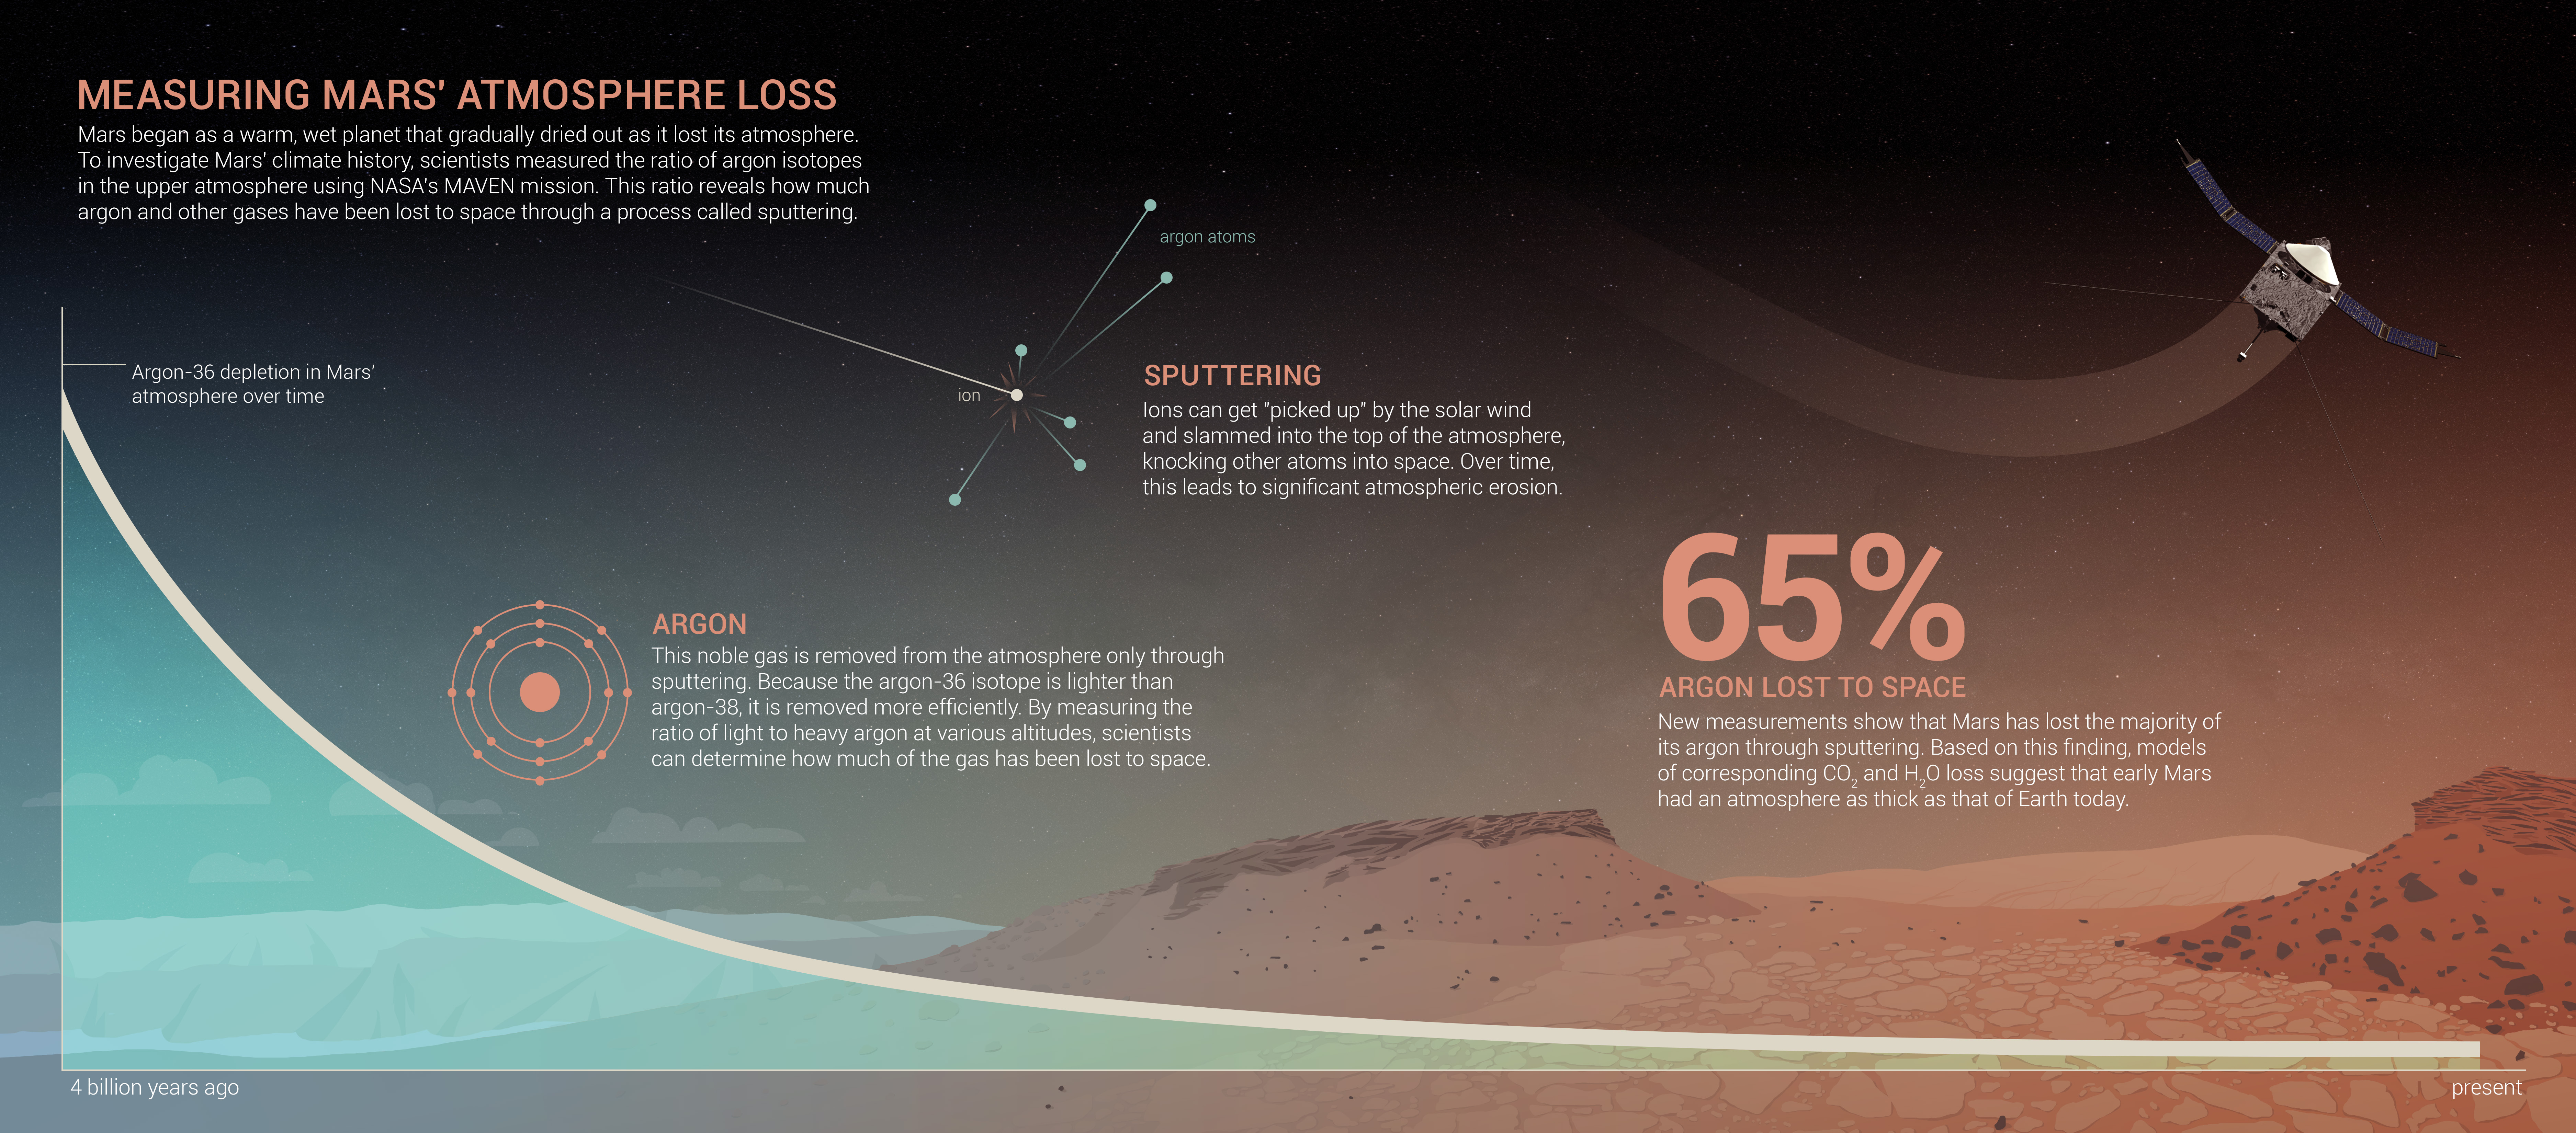 This poster made by NASA shows the different ways that Mars lost most of its atmosphere after its magnetic field disappeared.